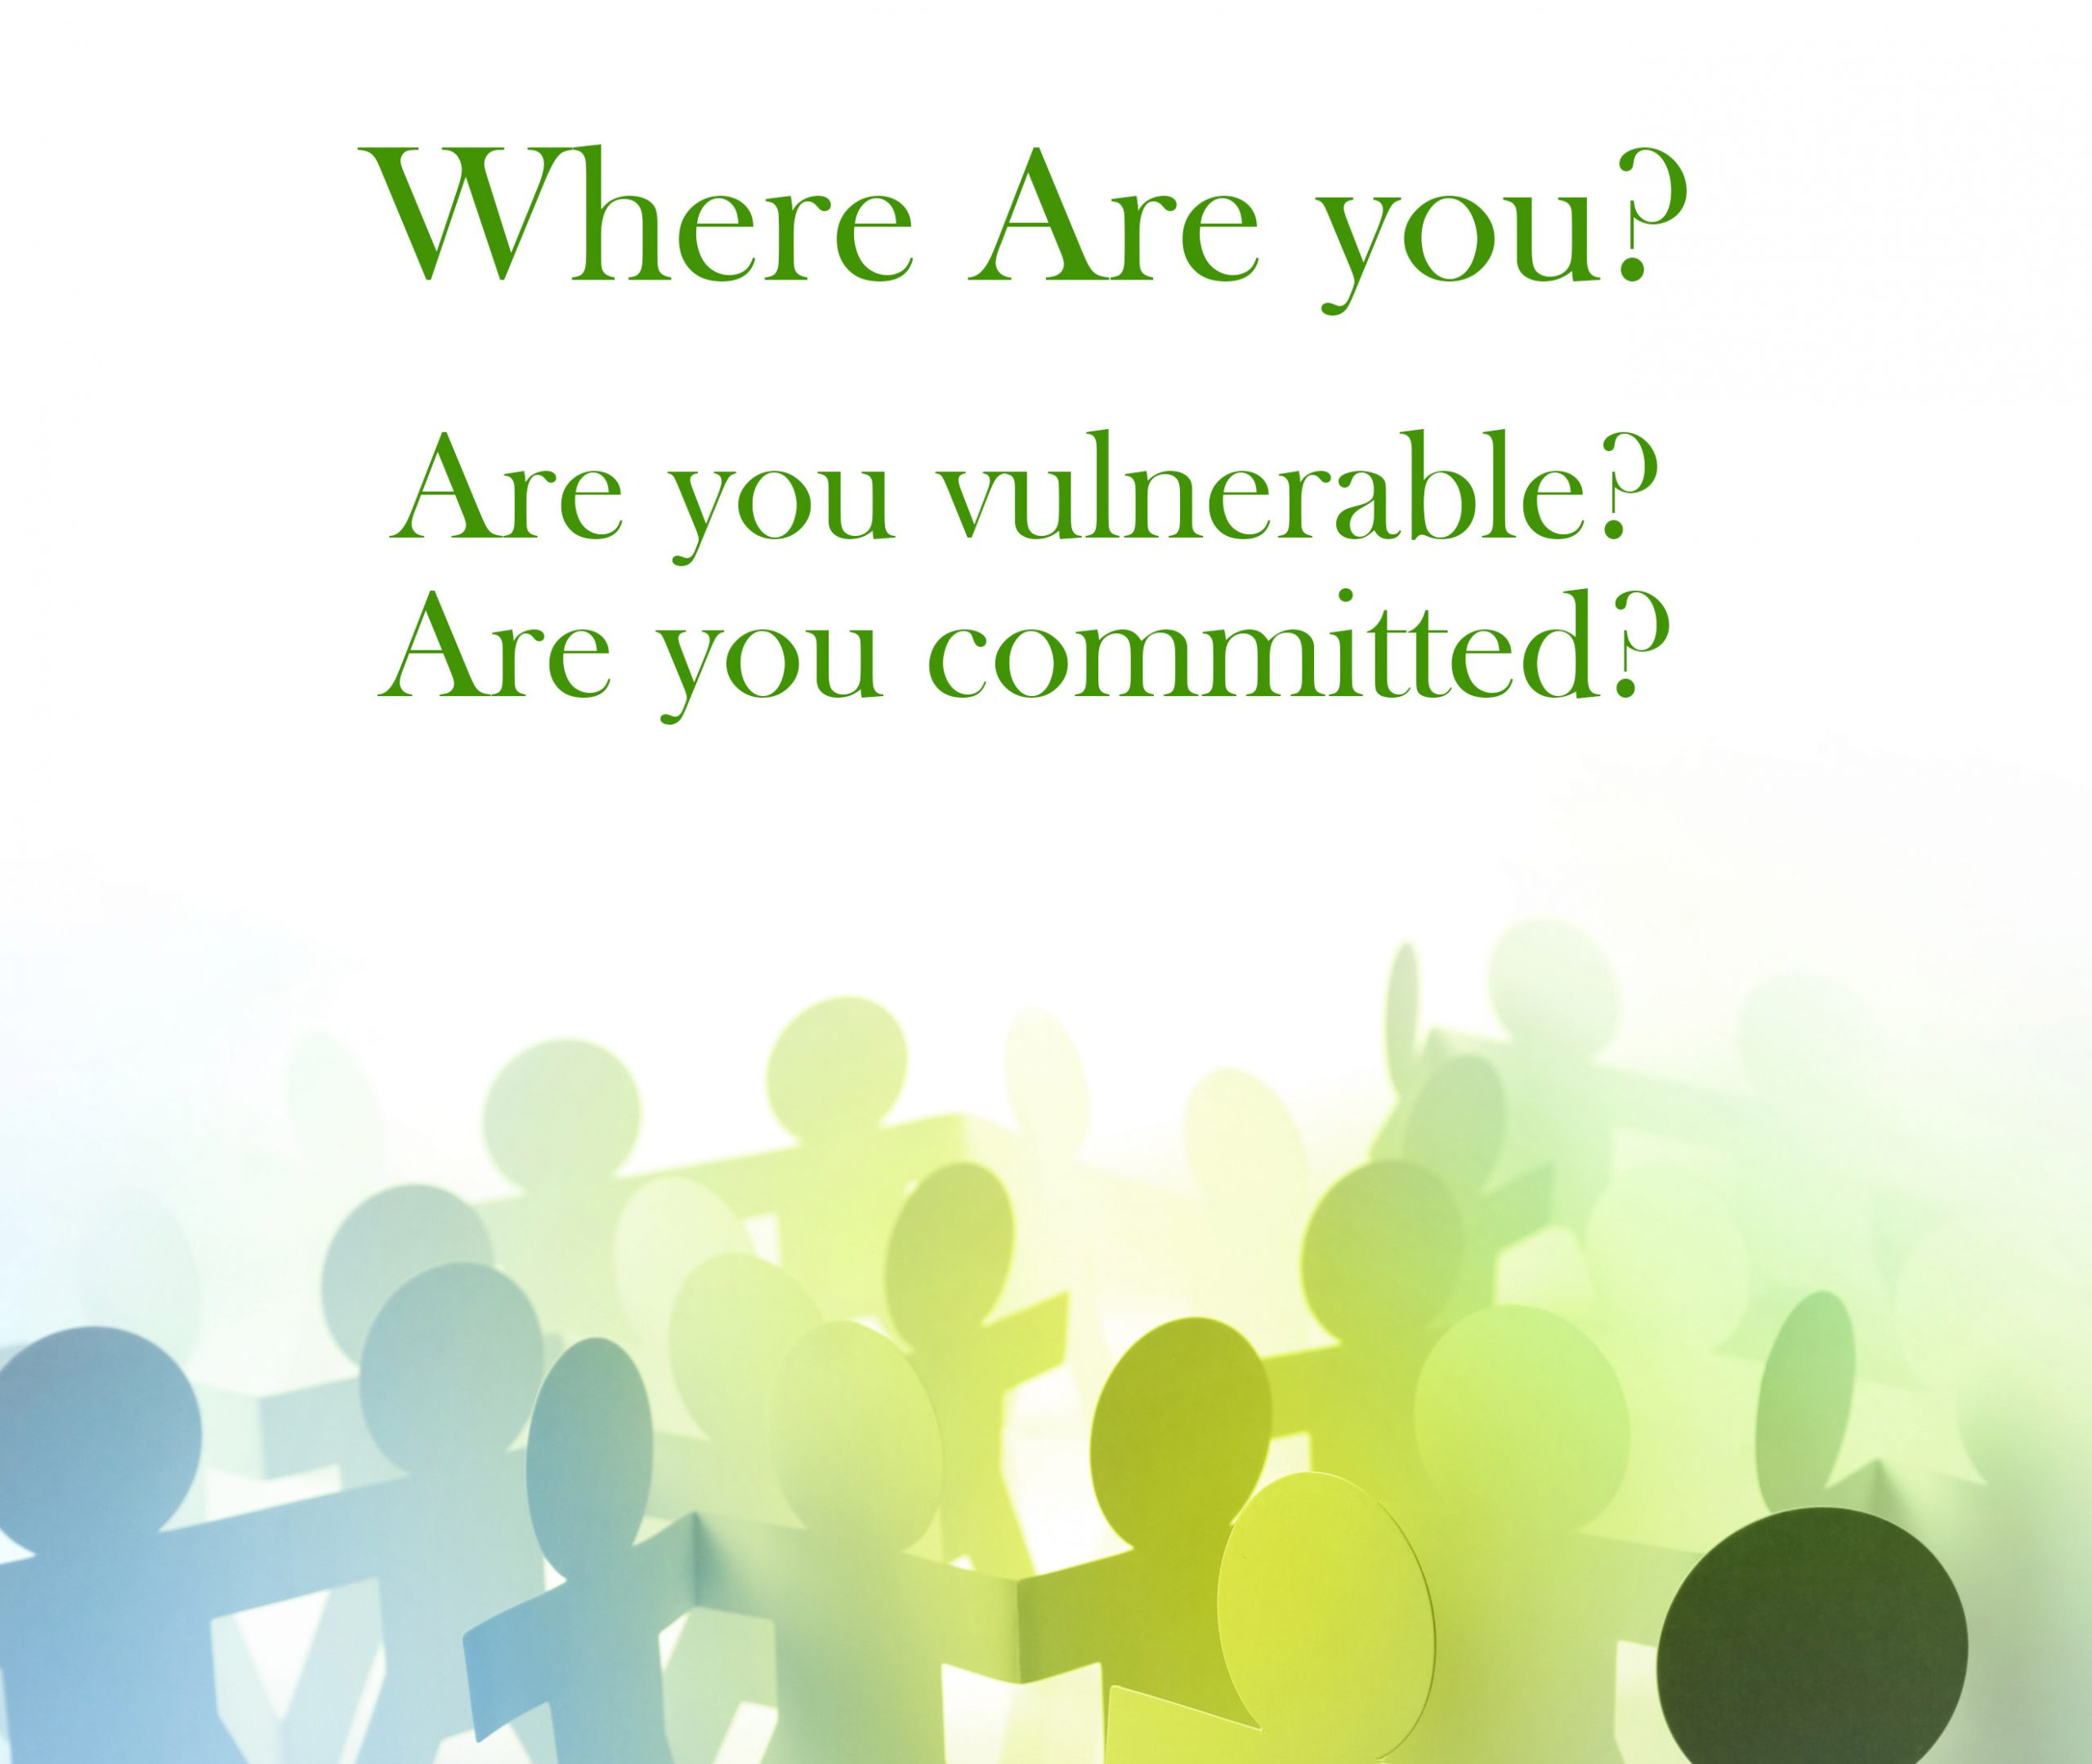 Two Necessities for Healthy Community – Do You Have Them?